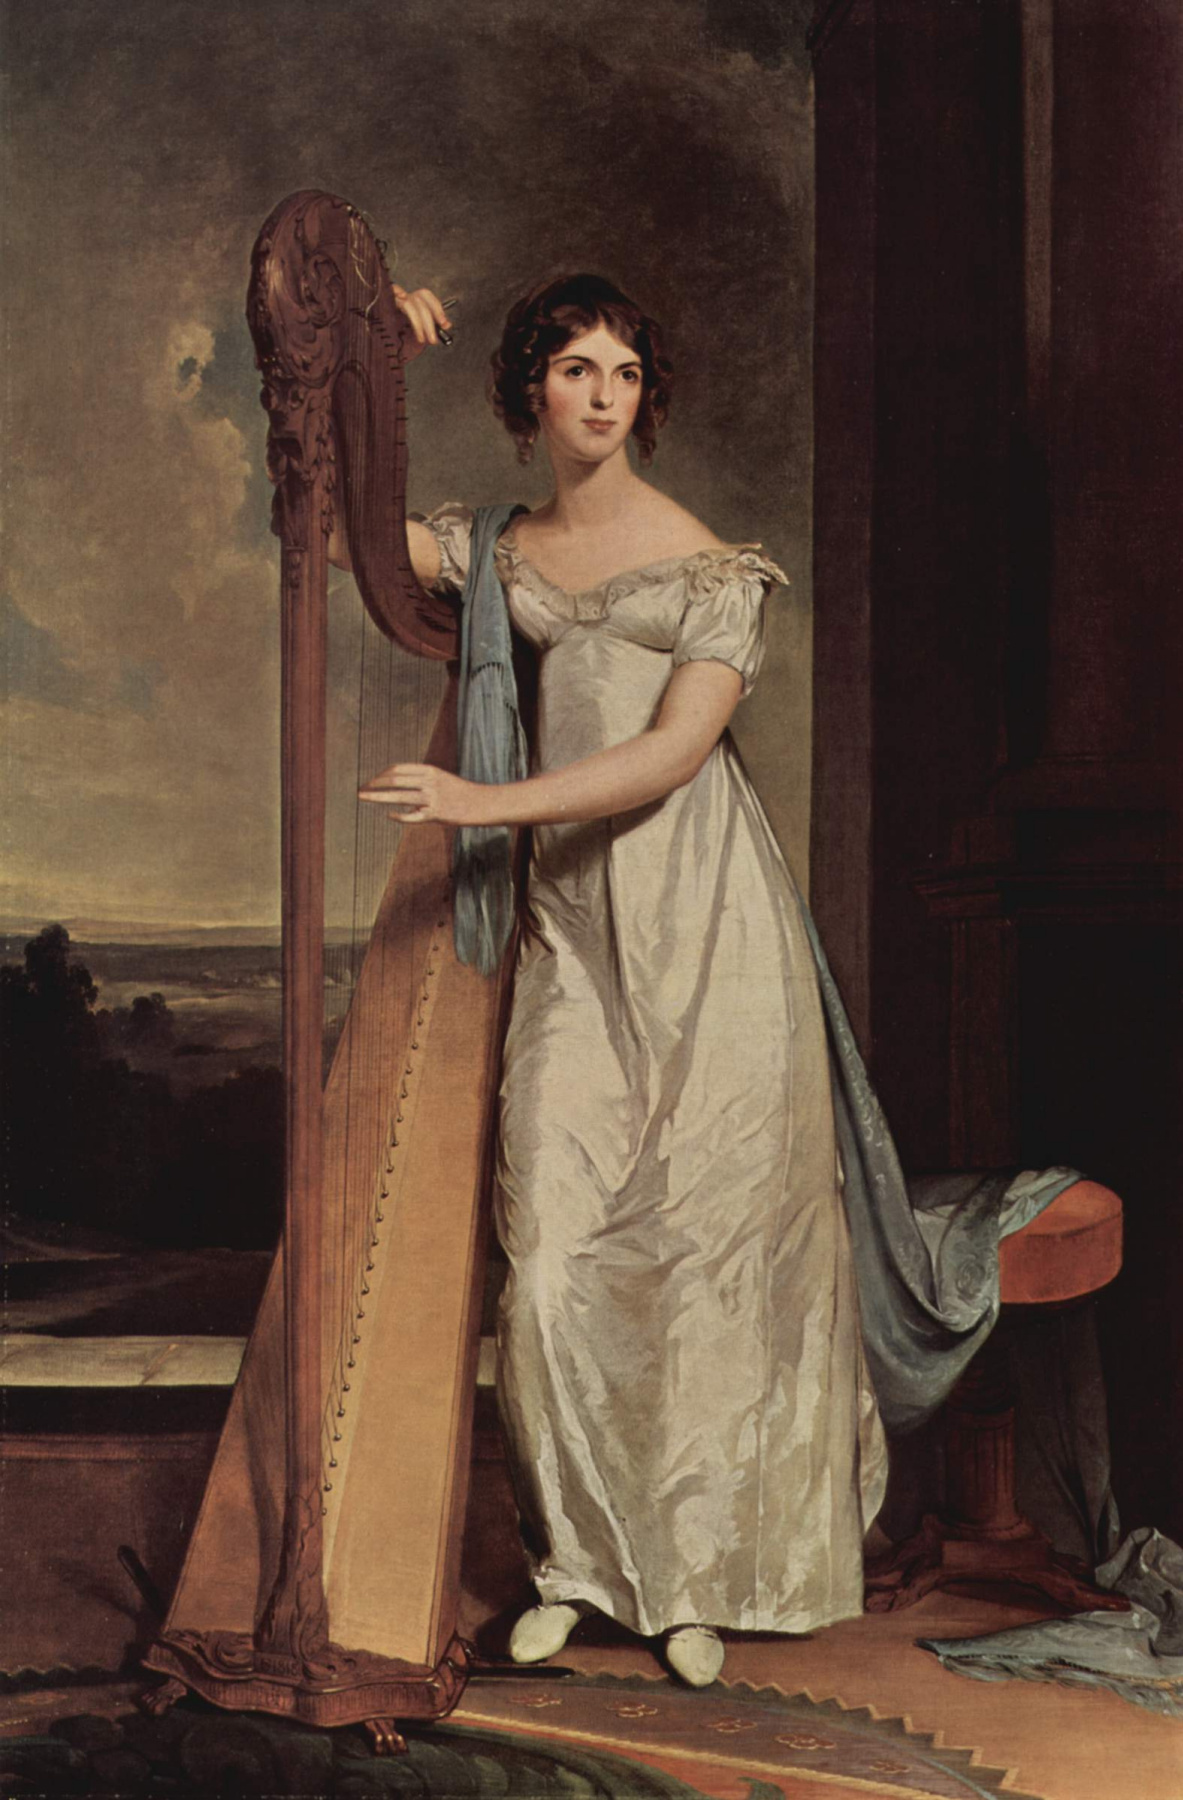 Thomas Sally. The lady with the harp